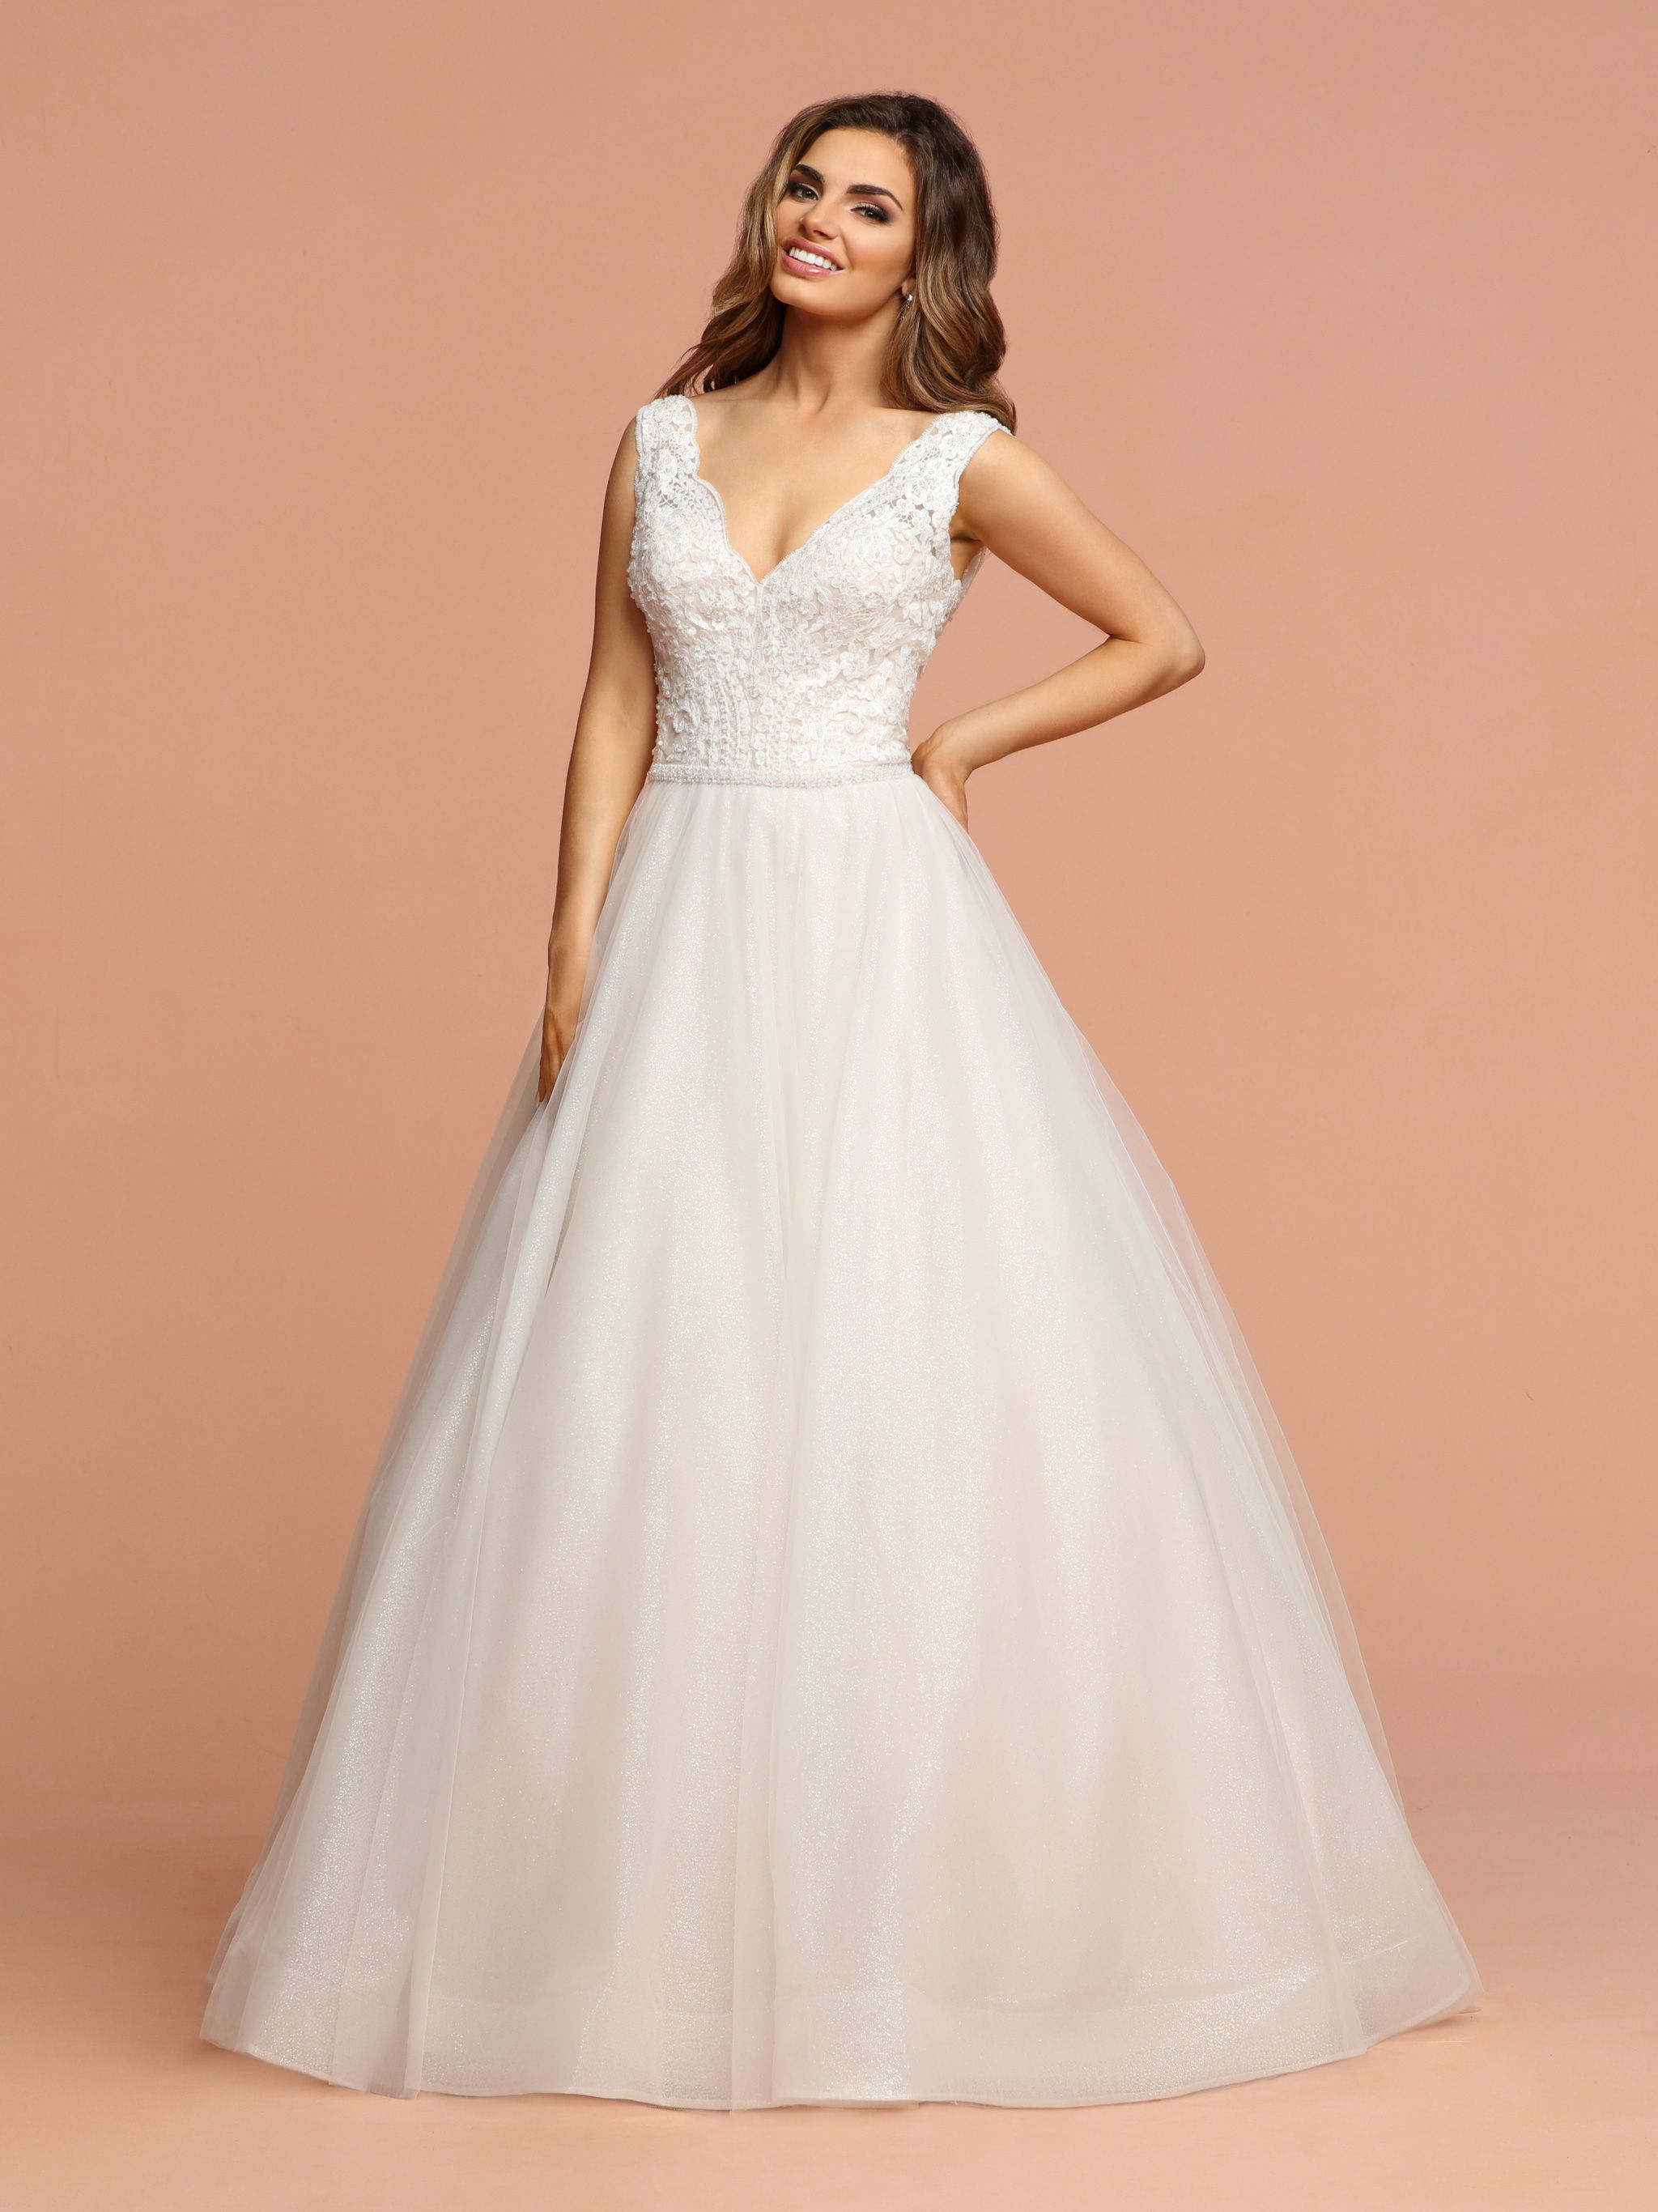 Check out the beautiful glitter skirt on this new gown